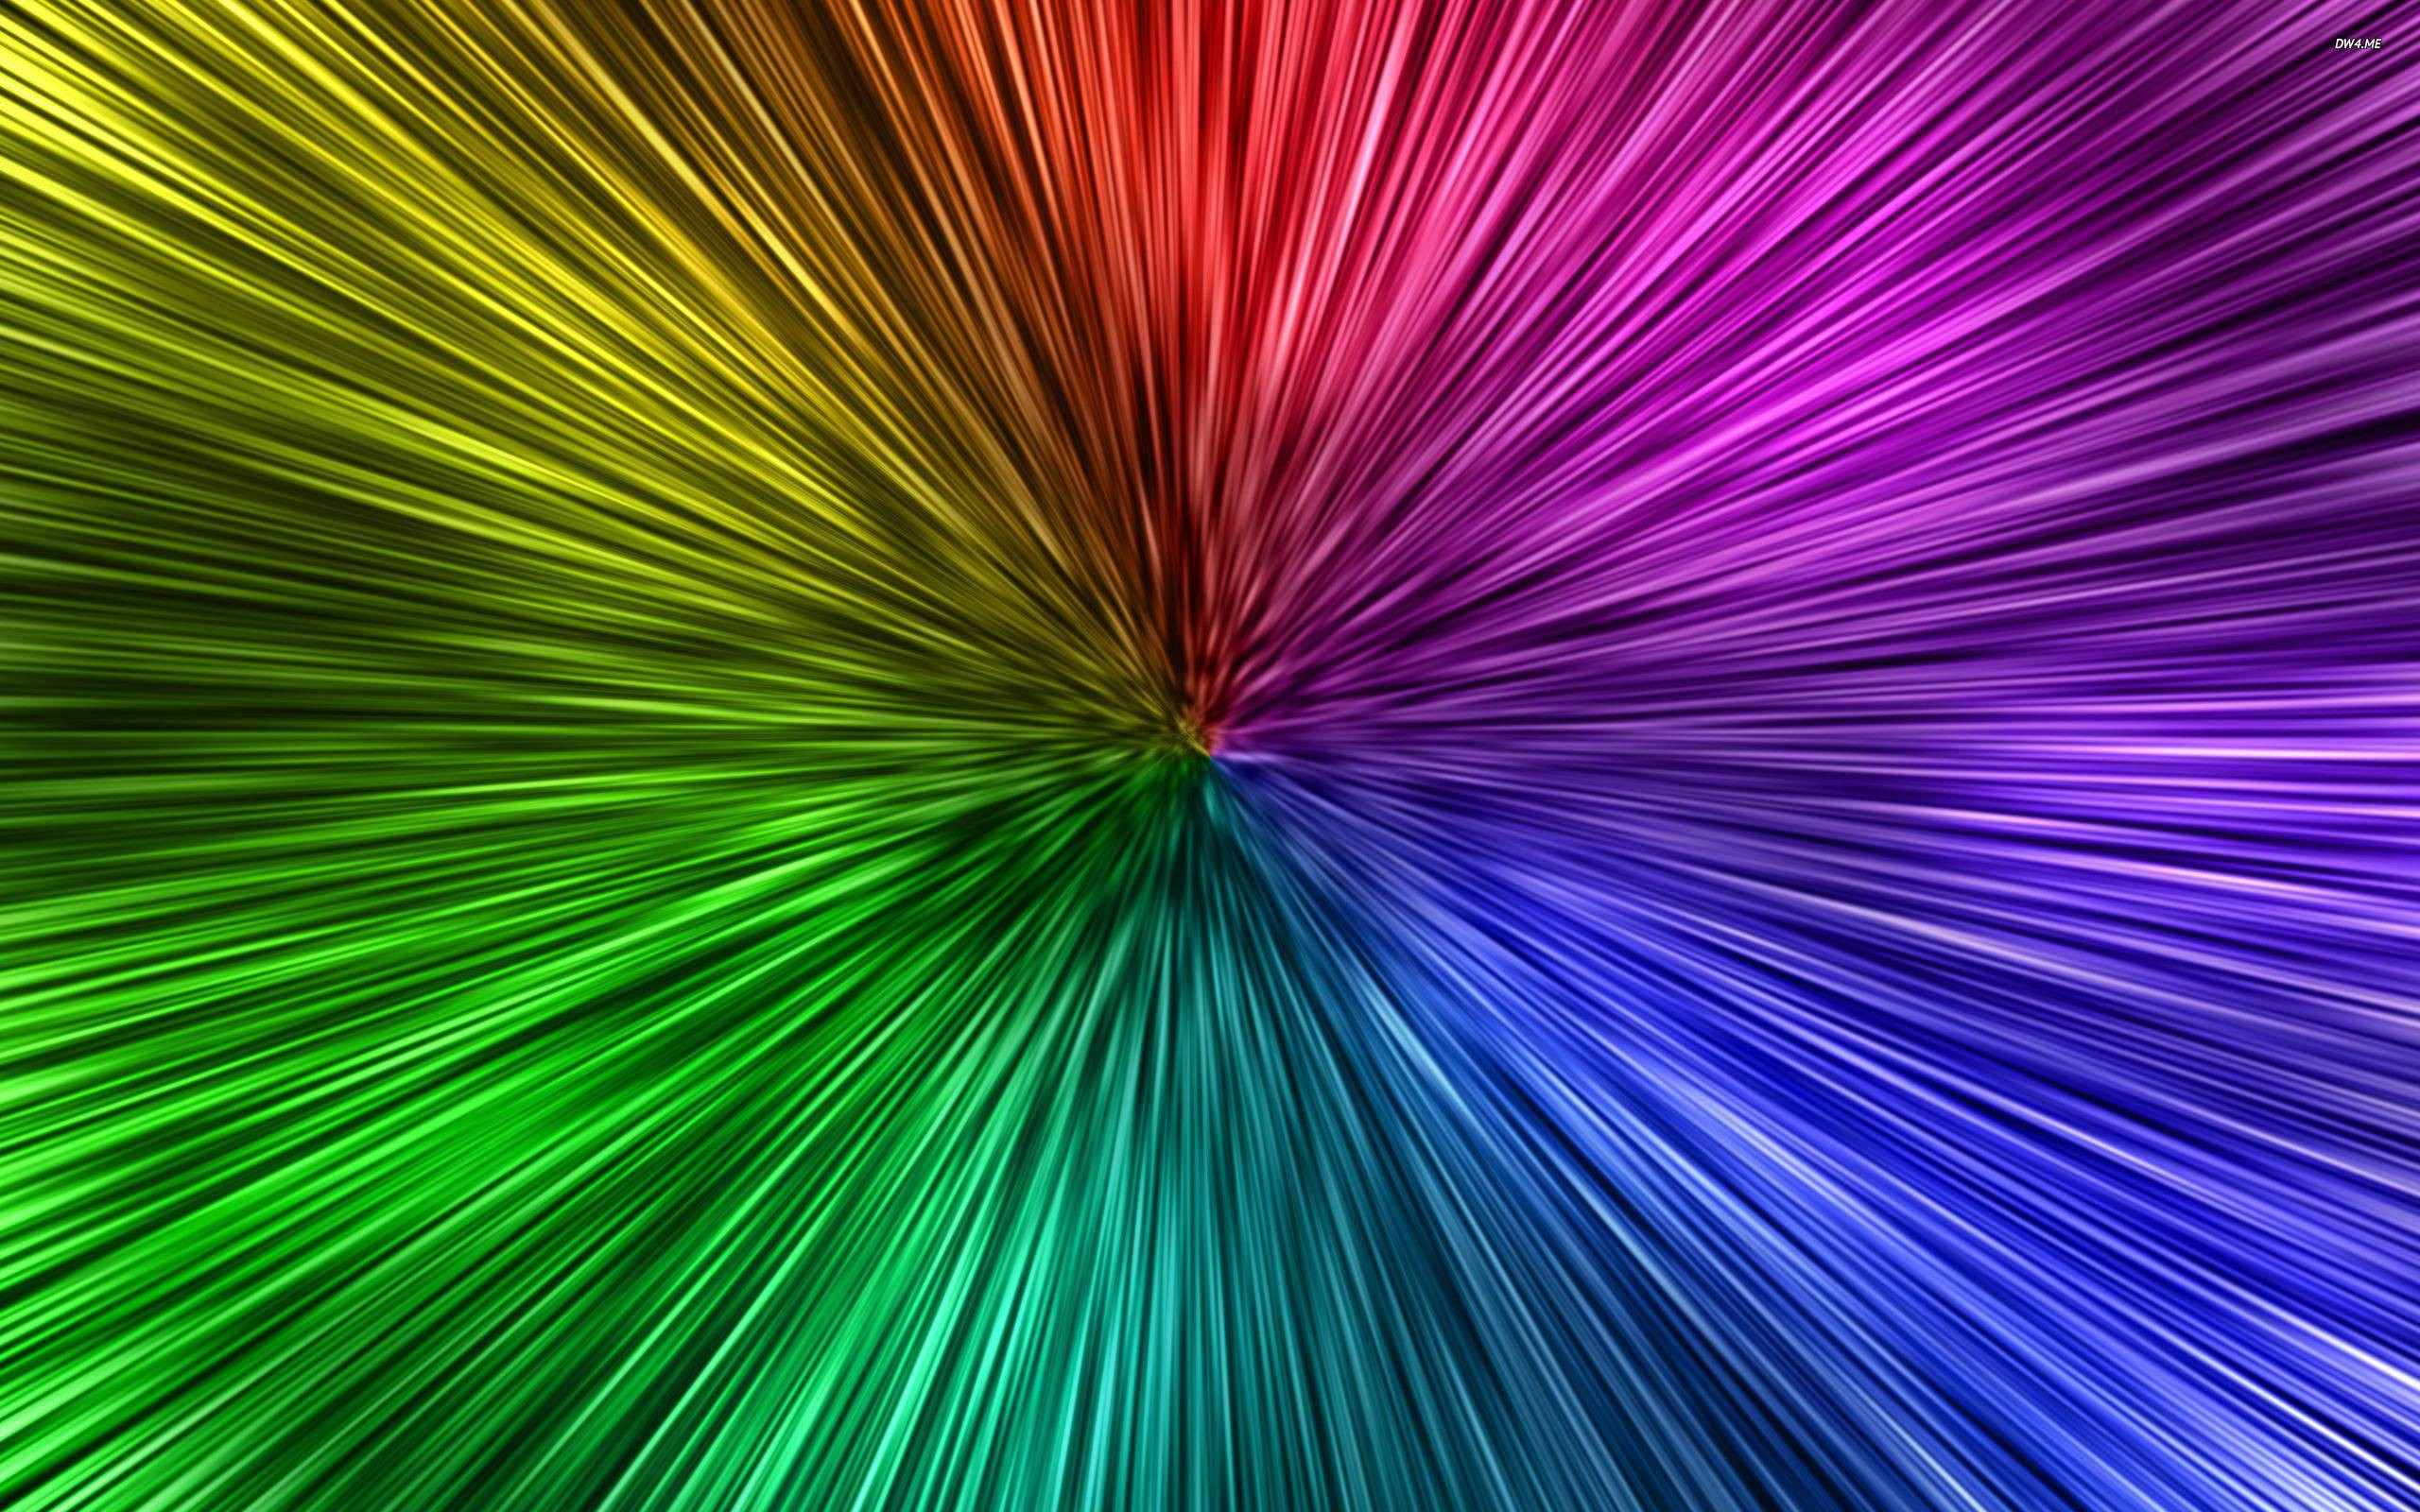 2560x1600 Image - Abstract-Neon-Wallpaper-Background-12.jpg - Neon colors